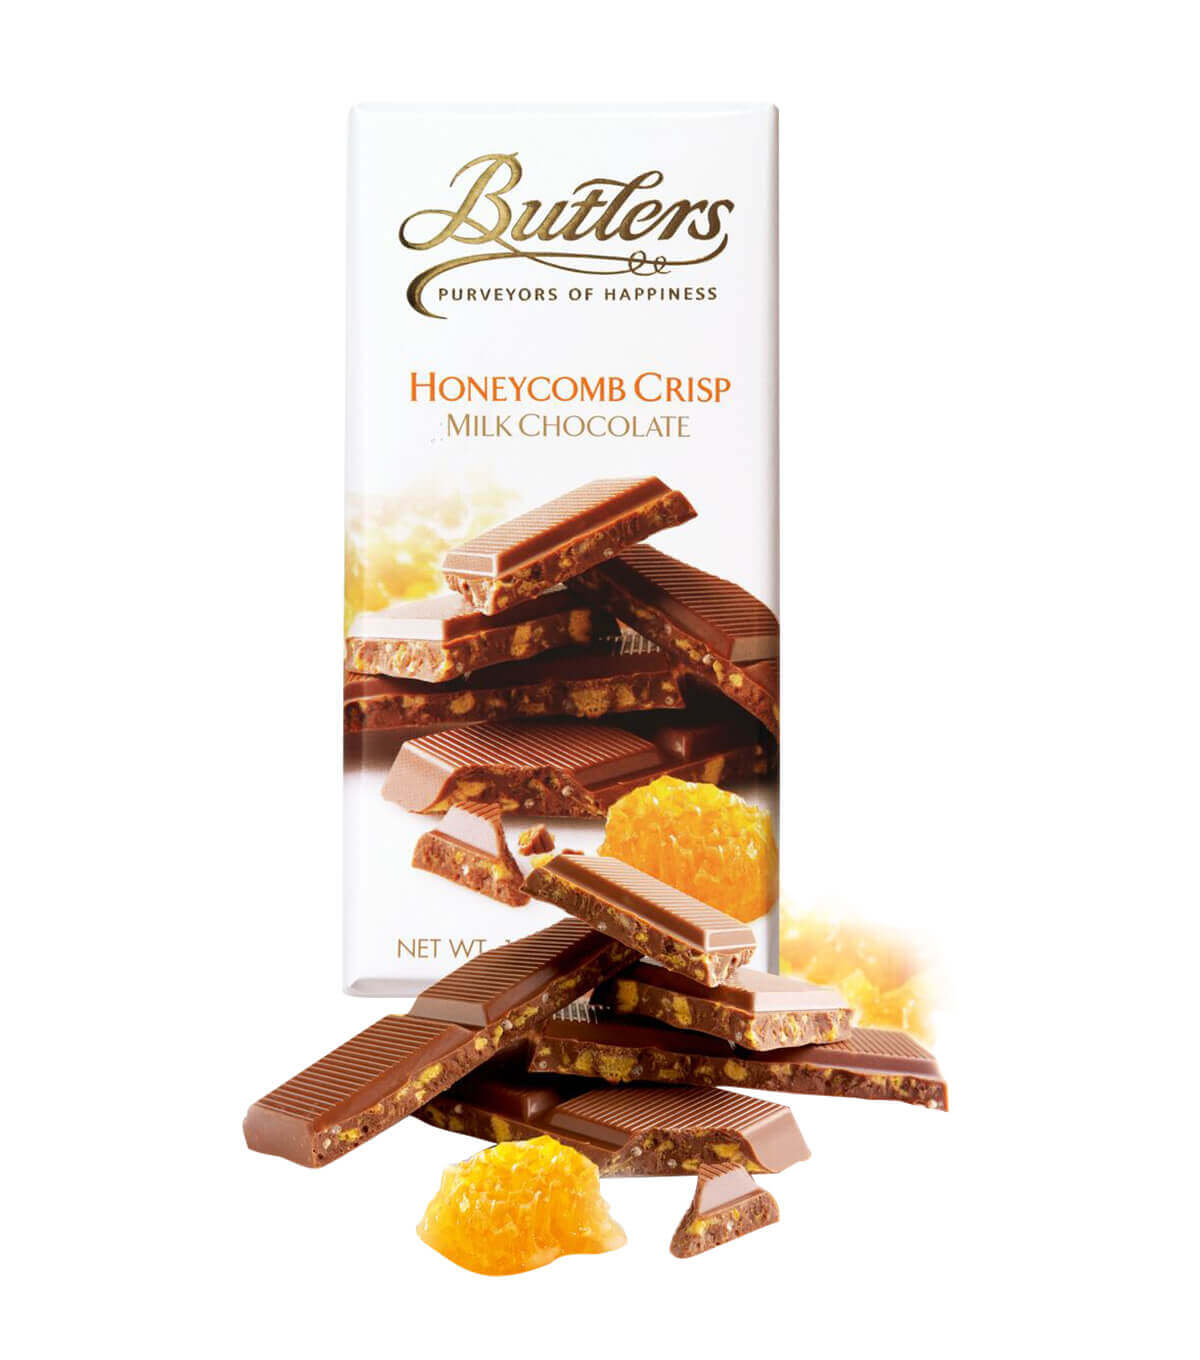 Milk Chocolate with Honeycomb Crisp